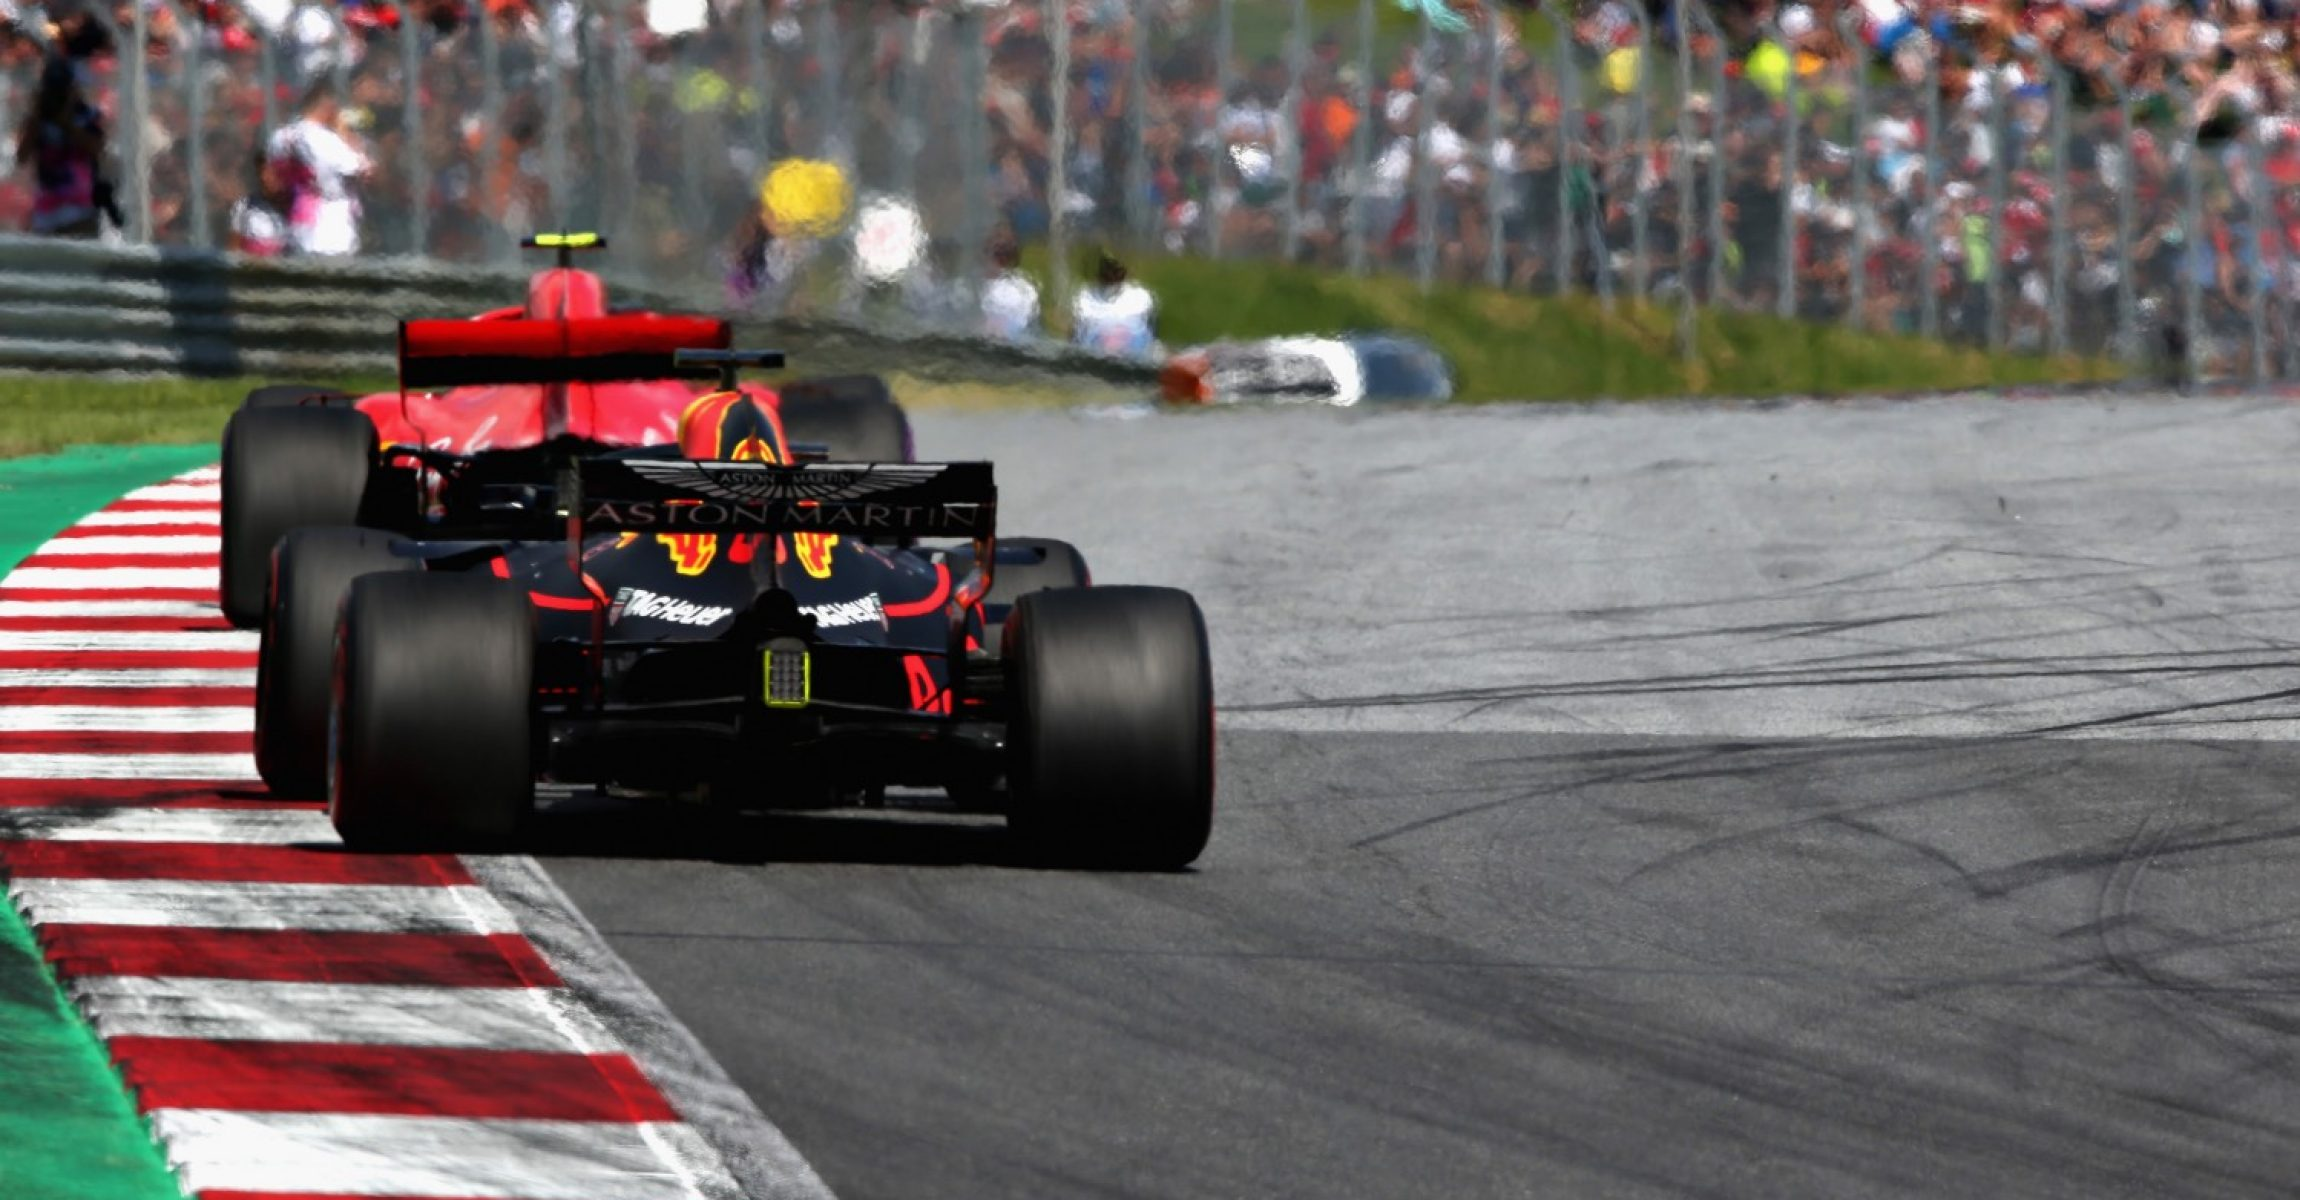 SPIELBERG, AUSTRIA - JULY 01: Daniel Ricciardo of Australia driving the (3) Aston Martin Red Bull Racing RB14 TAG Heuer on track during the Formula One Grand Prix of Austria at Red Bull Ring on July 1, 2018 in Spielberg, Austria. (Photo by Charles Coates/Getty Images)